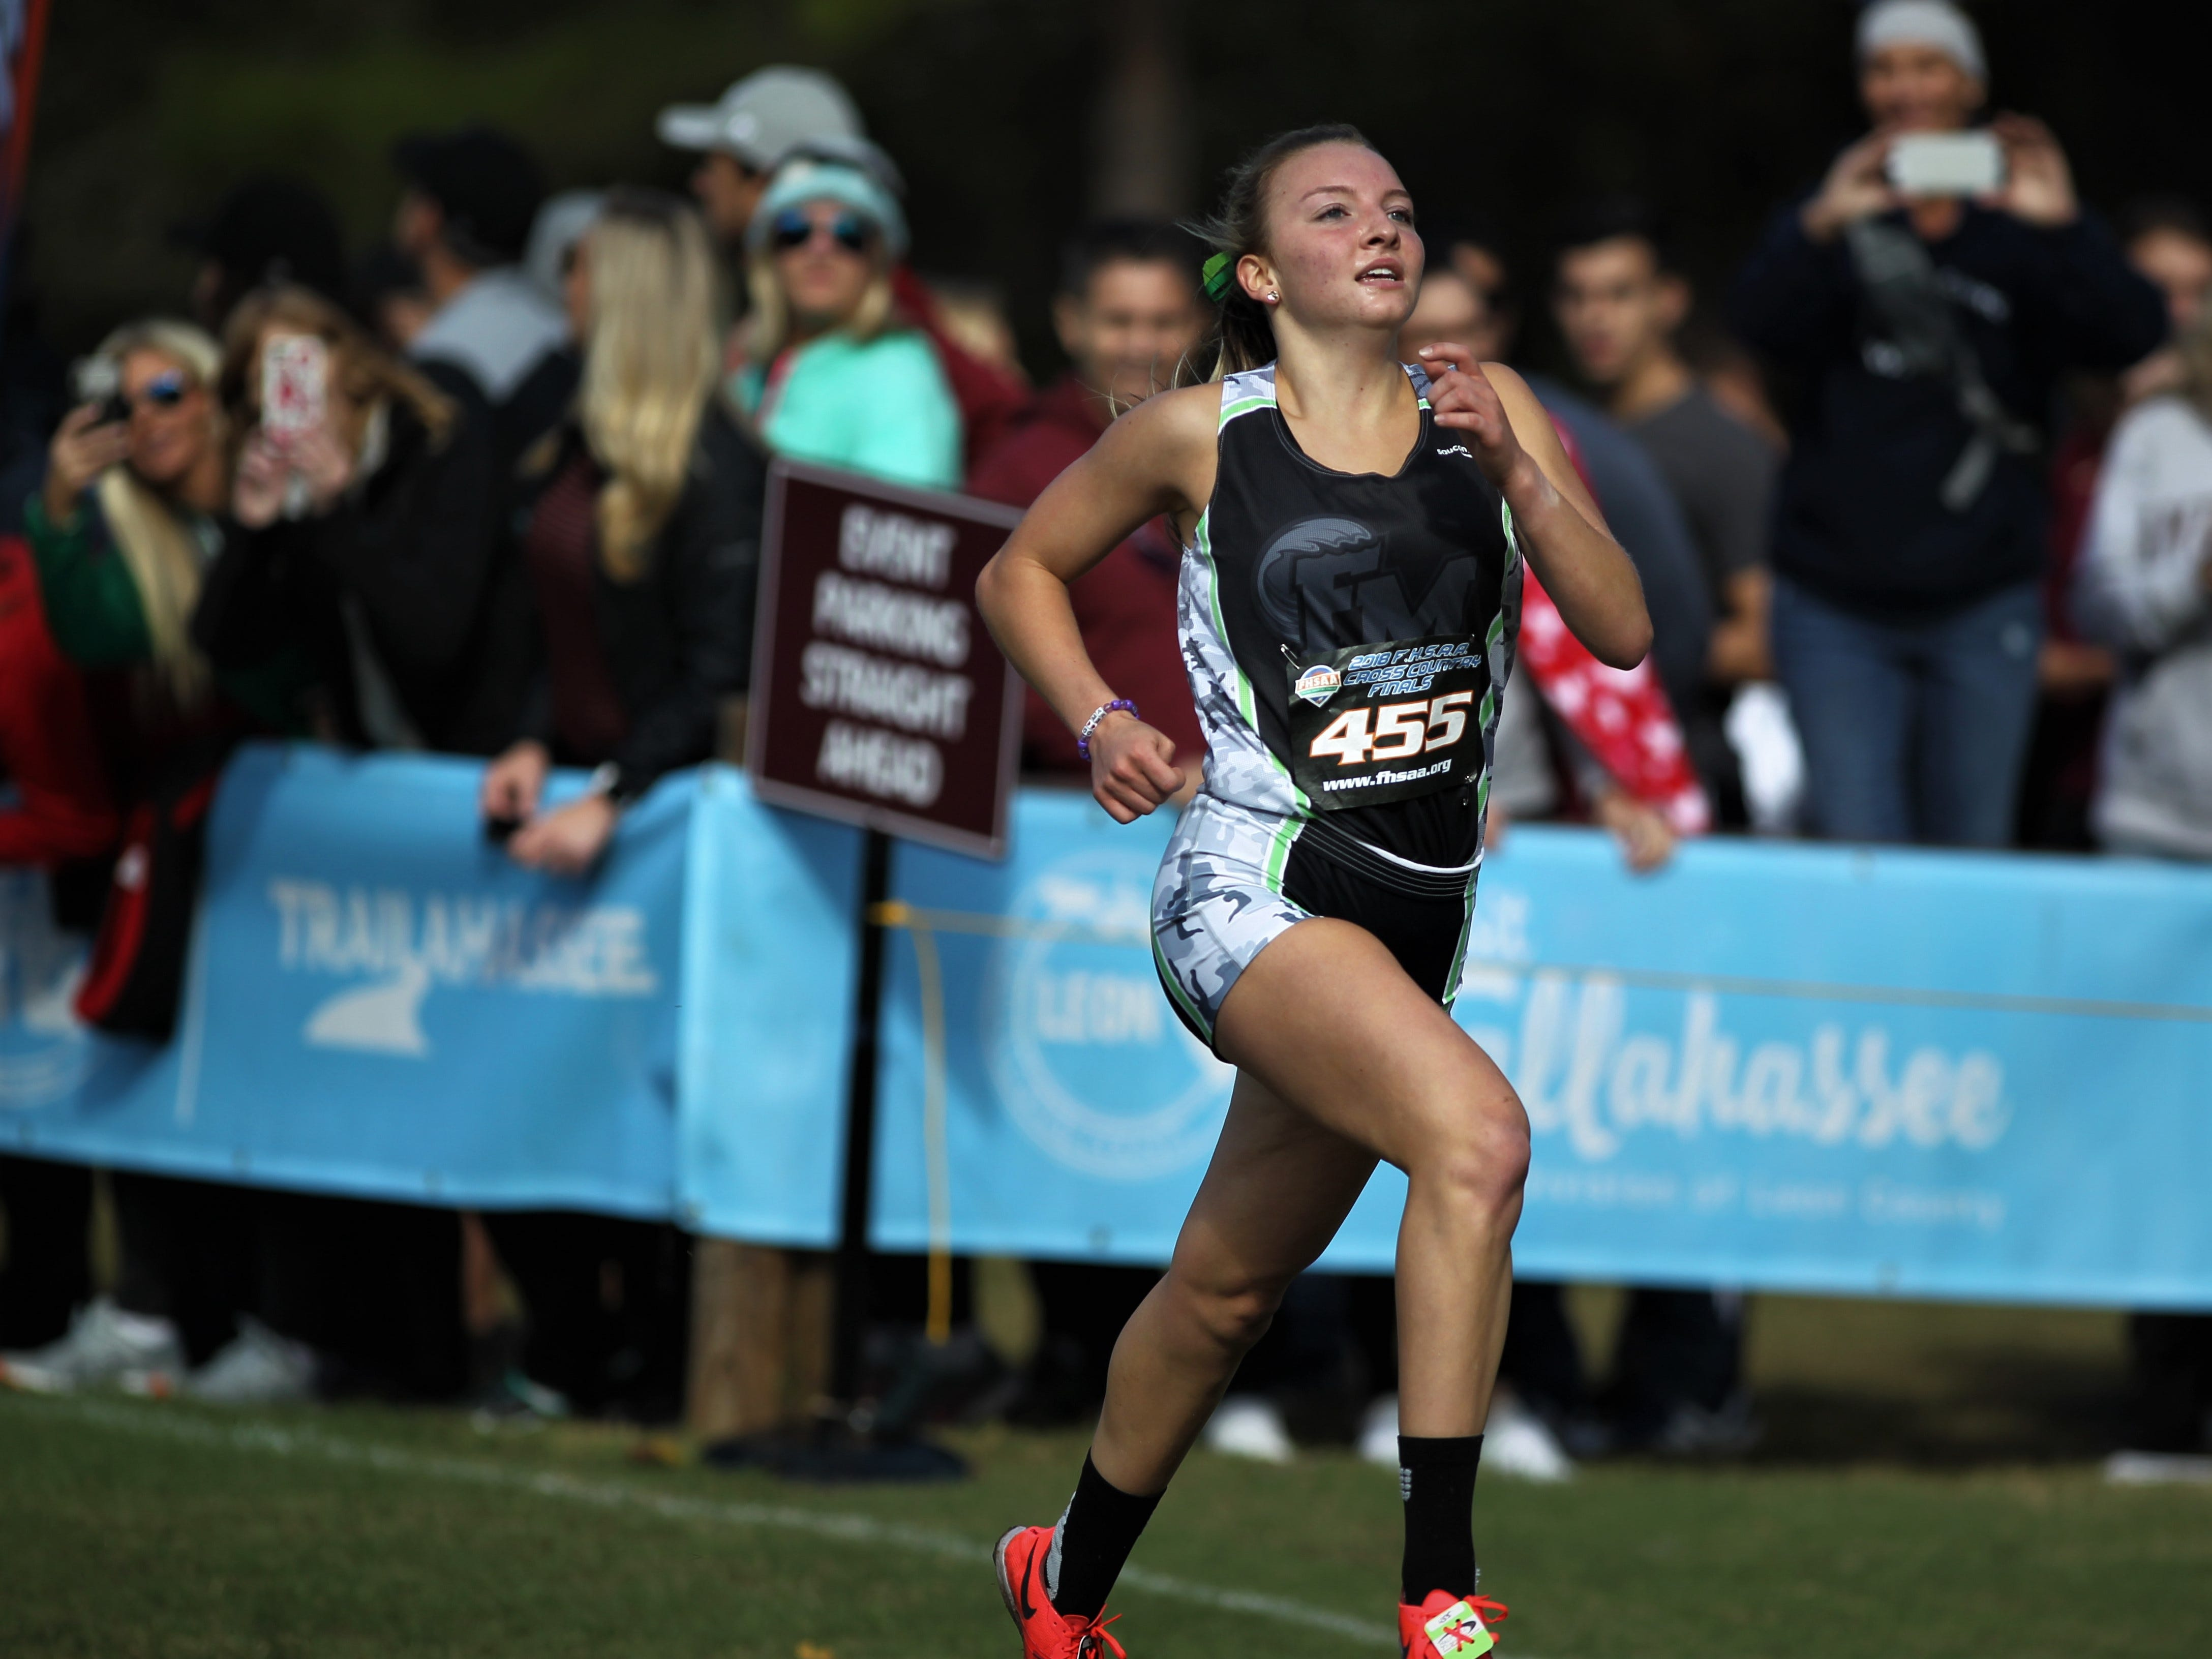 Fort Myers junior Stephanie Ormsby runs to a 20th place finish in the Class 3A girls race of the FHSAA Cross Country State Championships at Apalachee Regional Park in Tallahassee, Saturday, Nov. 11, 2018.